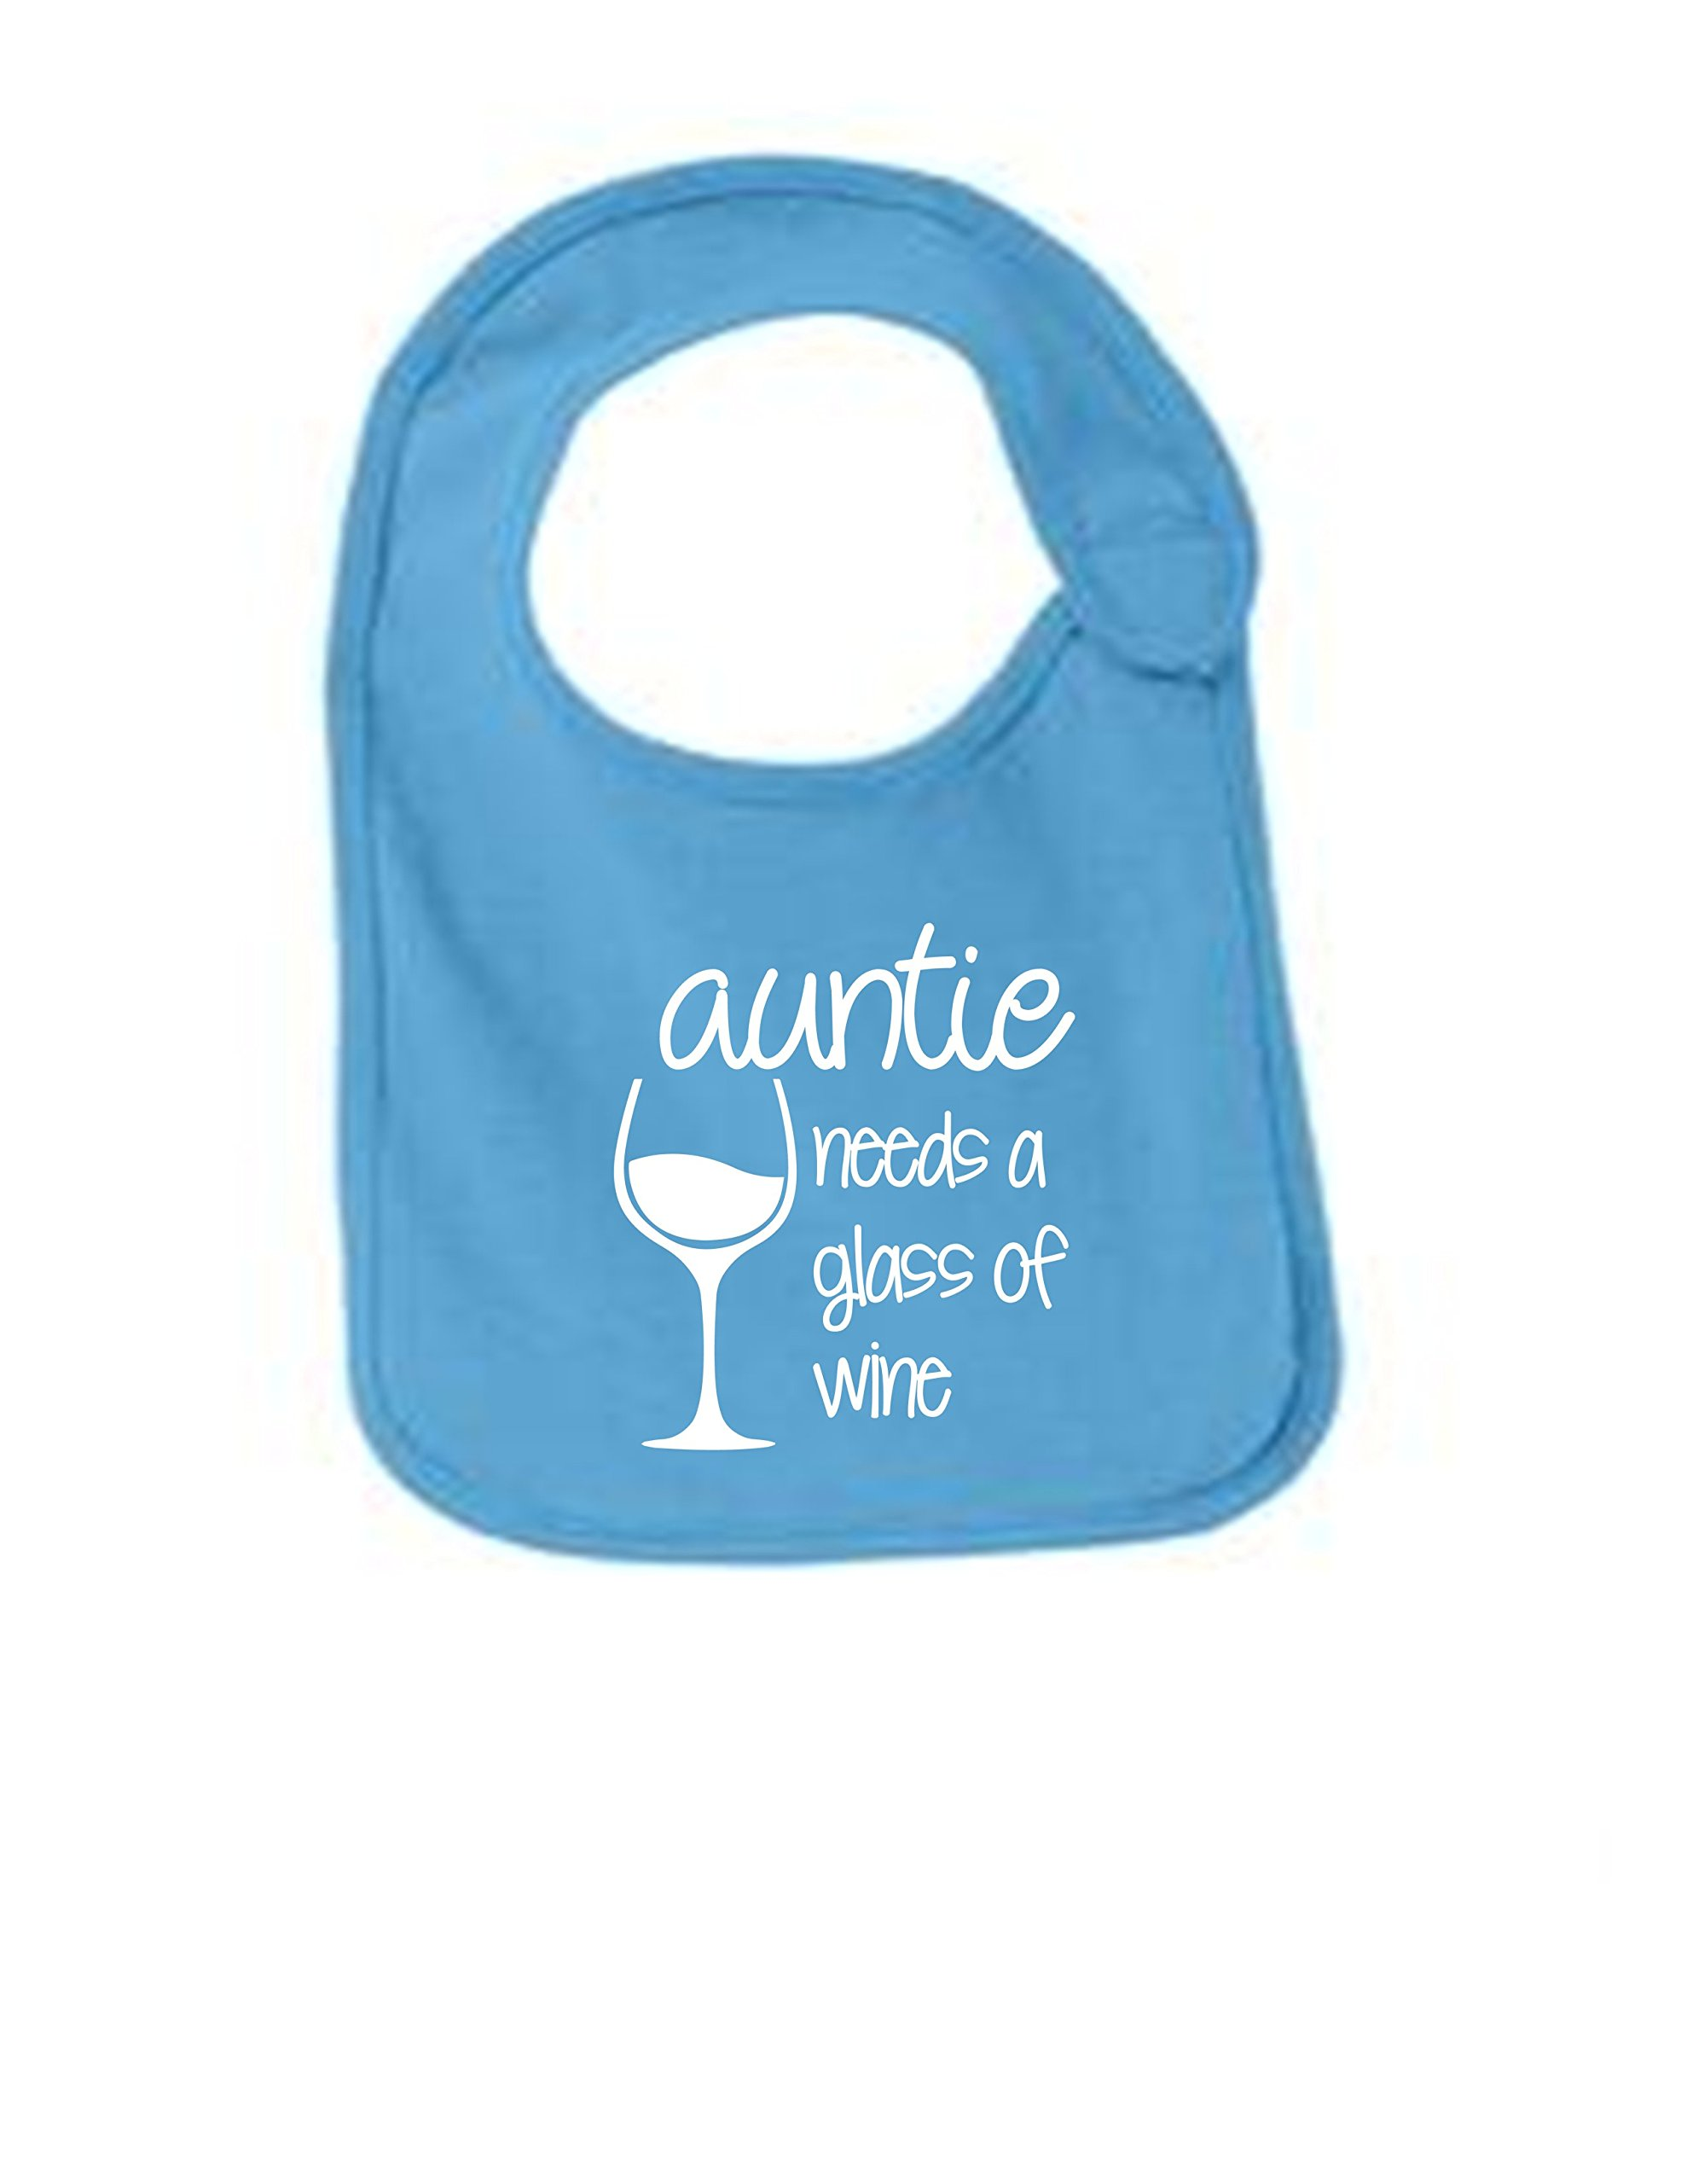 Auntie Needs A Glass Of Wine Funny Infant Jersey Bib Aquatic Blue One Size by Sod Uniforms